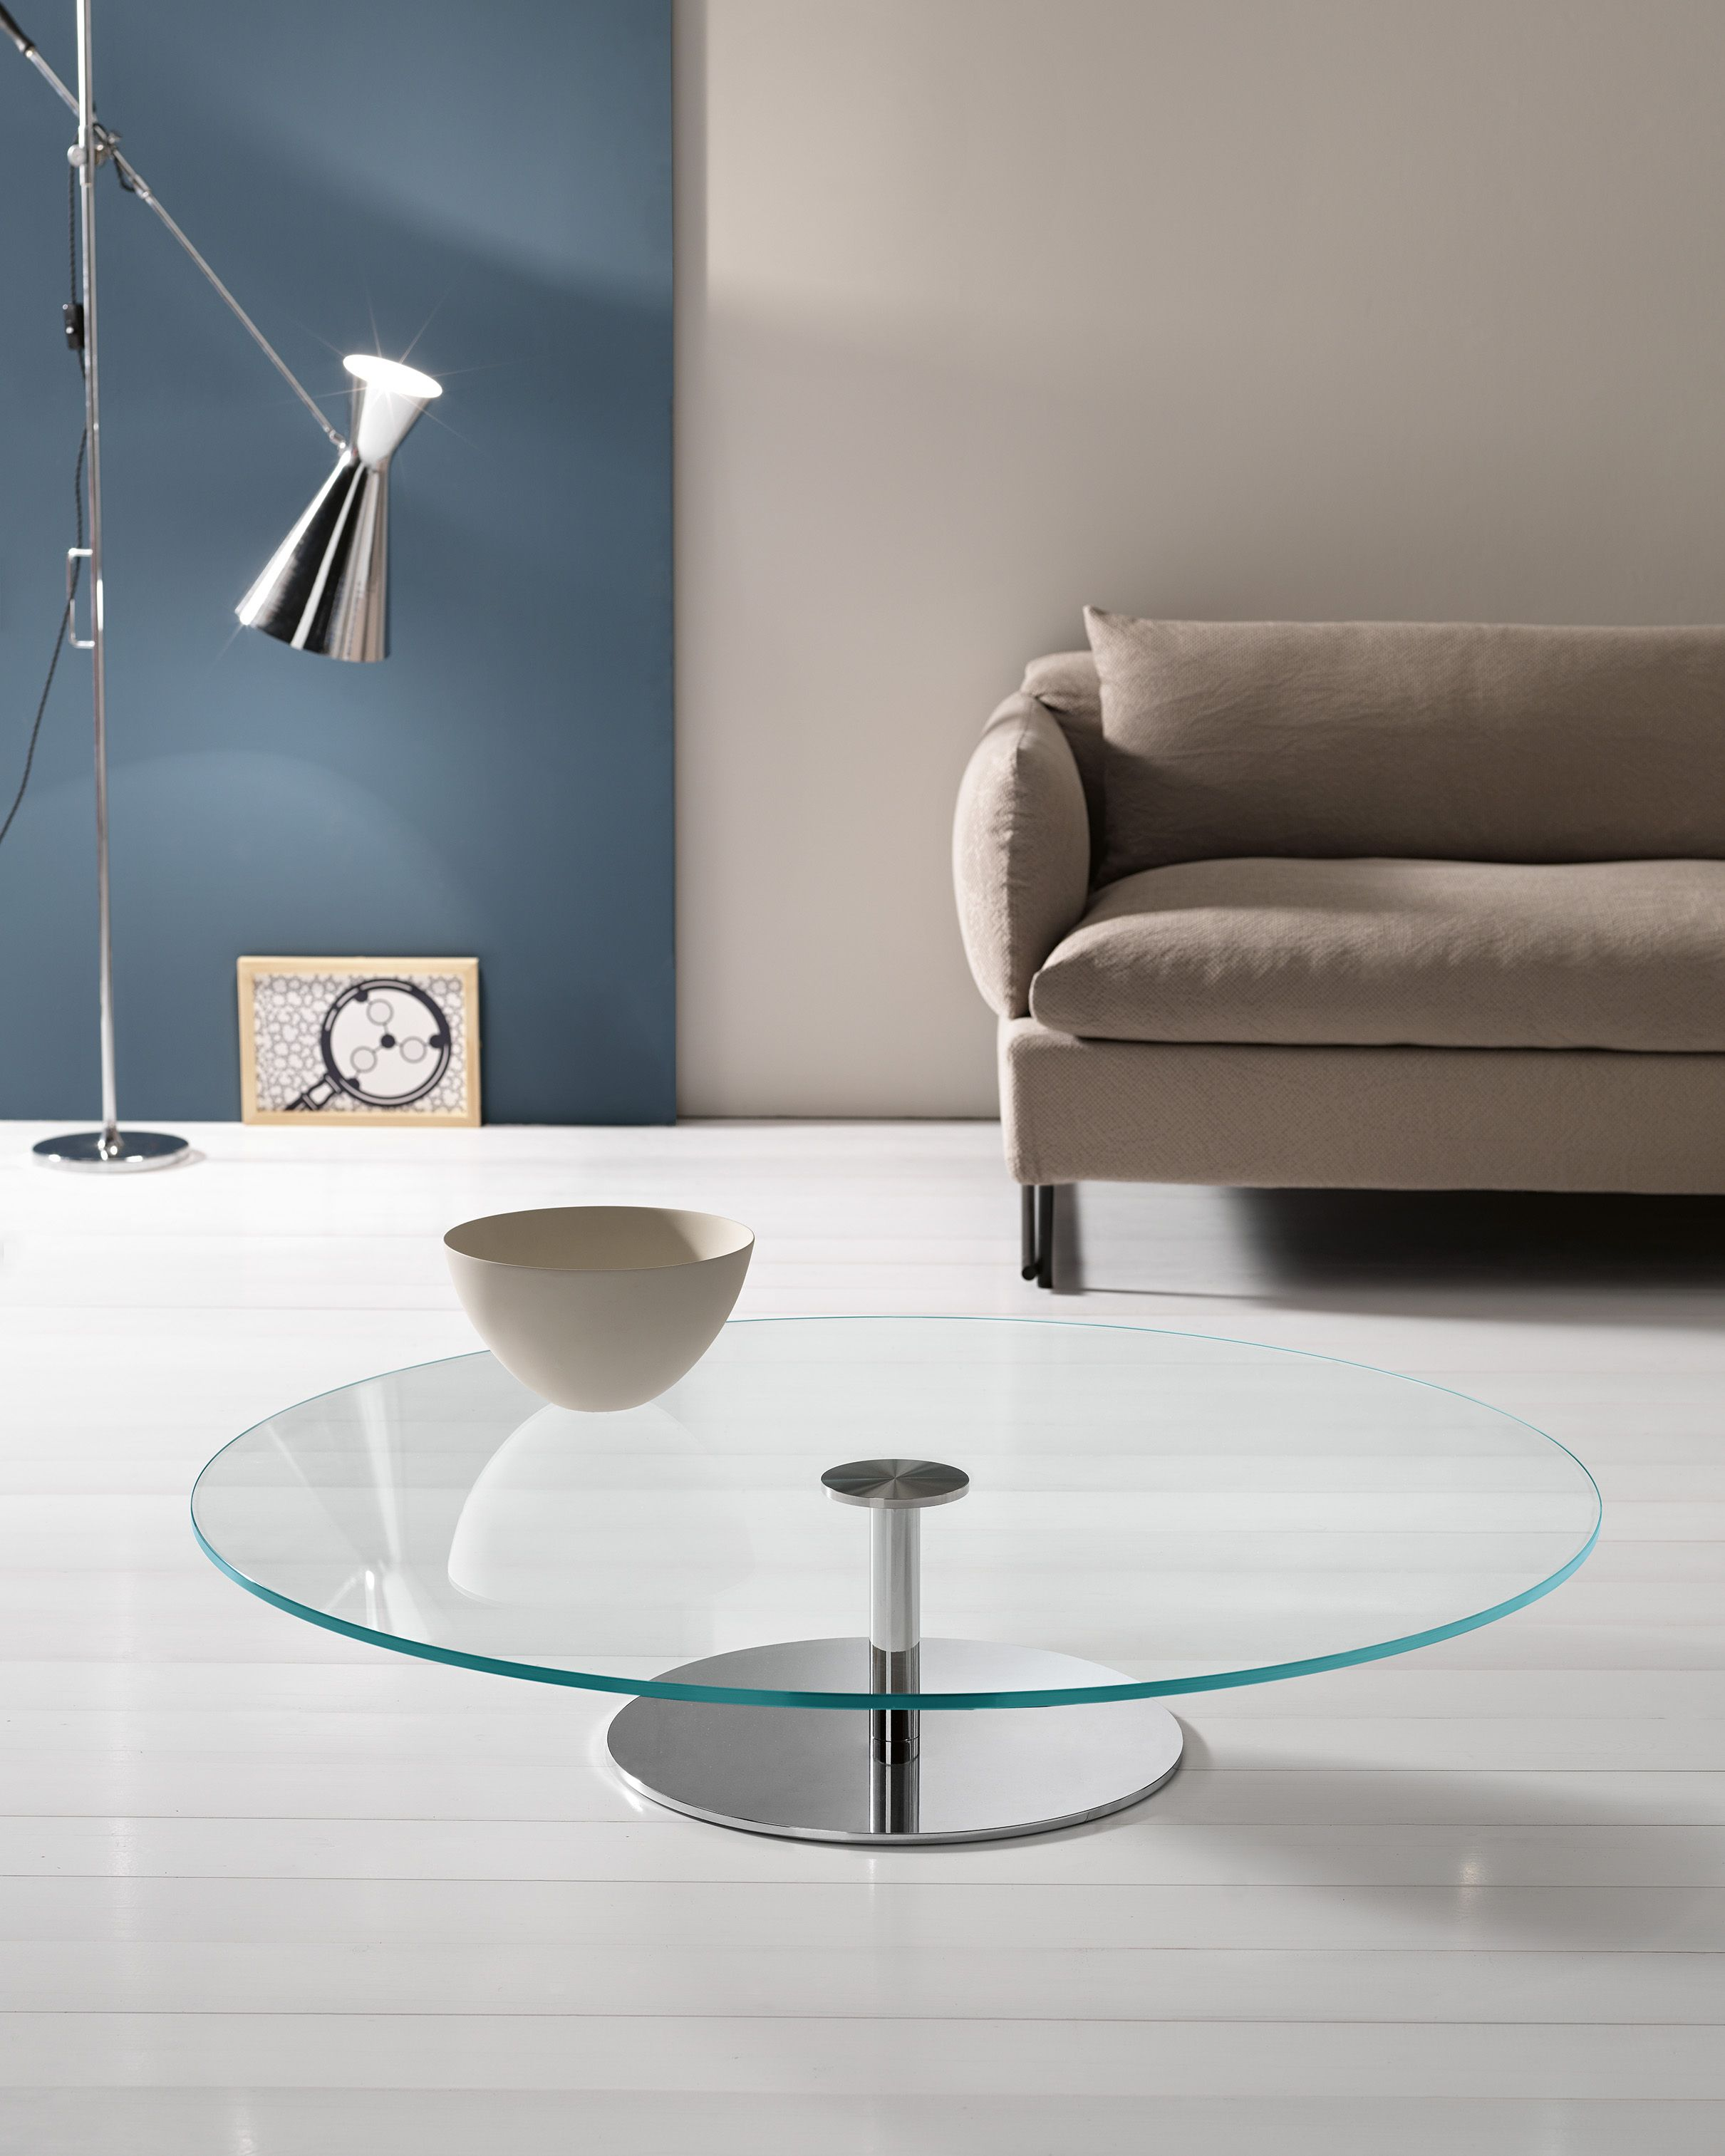 Low Round Coffee Table Ginger By Esedra By Prospettive Design Studio Memo Coffee Table Design Marble Round Coffee Table Coffee Table [ 779 x 1038 Pixel ]